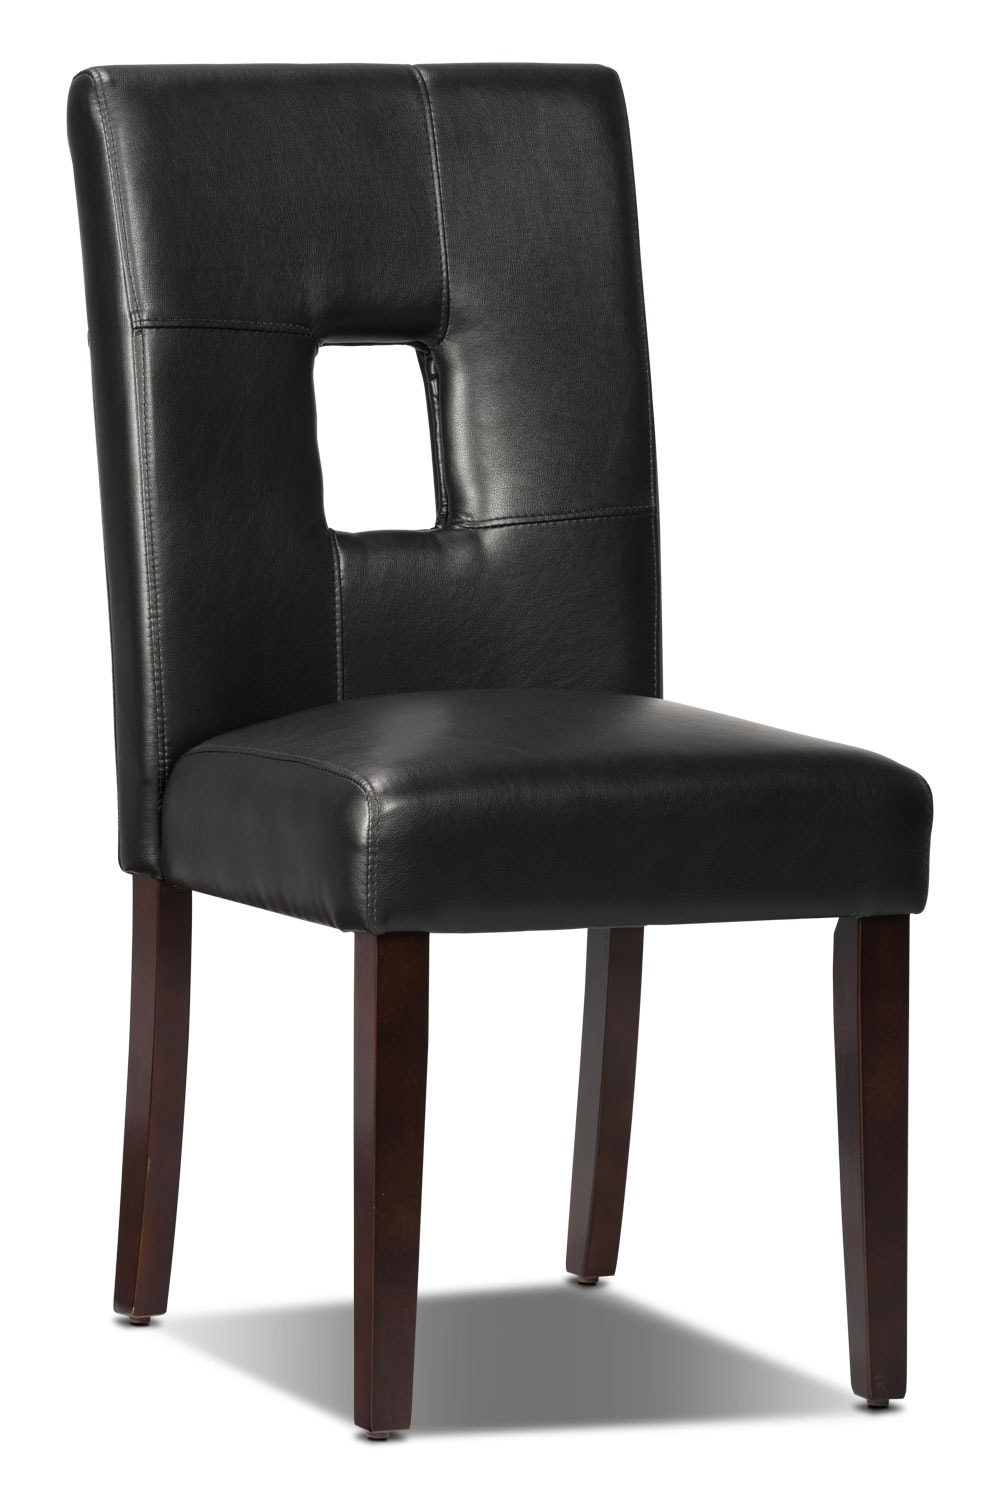 Mckena faux leather dining chair black the brick for Black leather dining chairs